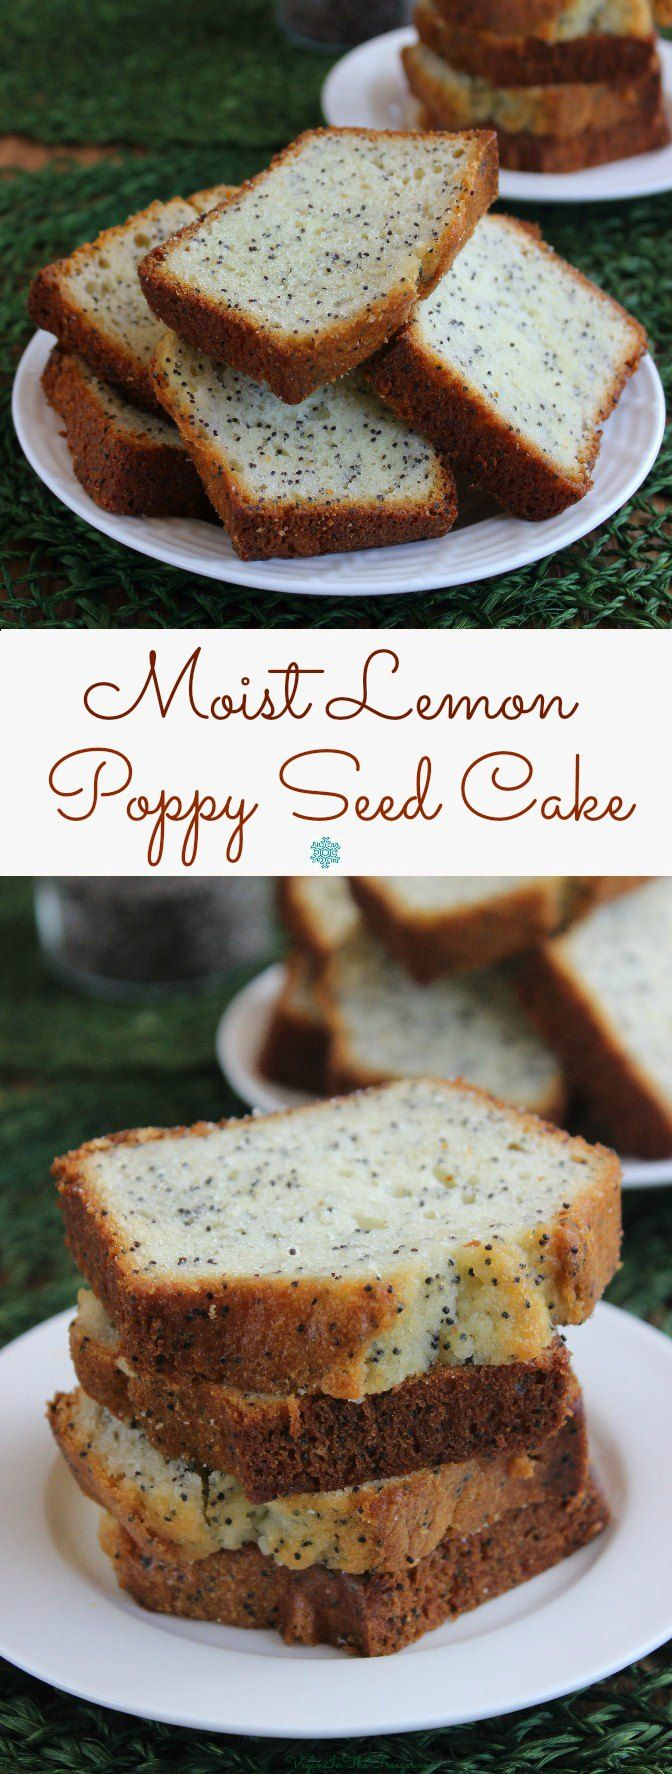 Moist Lemon Poppy Seed Cake has a little zing of sweet lemon freshness. So easy and you only need one bowl. photo